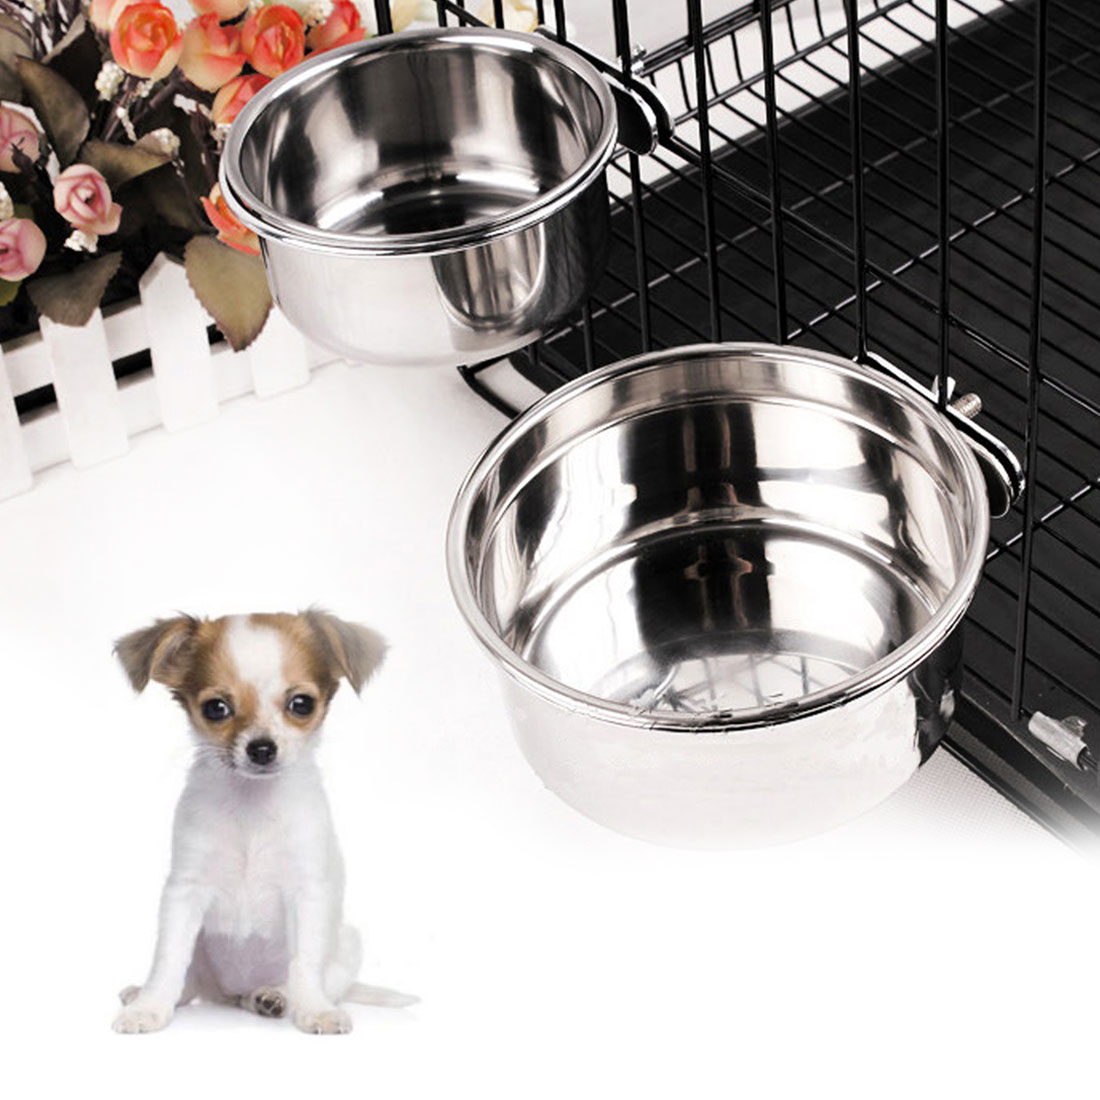 1pc Stainless Steel Hanging-on Bowl For Pet Dog Cat Food Water Bowl For Crates Cages Dog Parrot Bird Pet